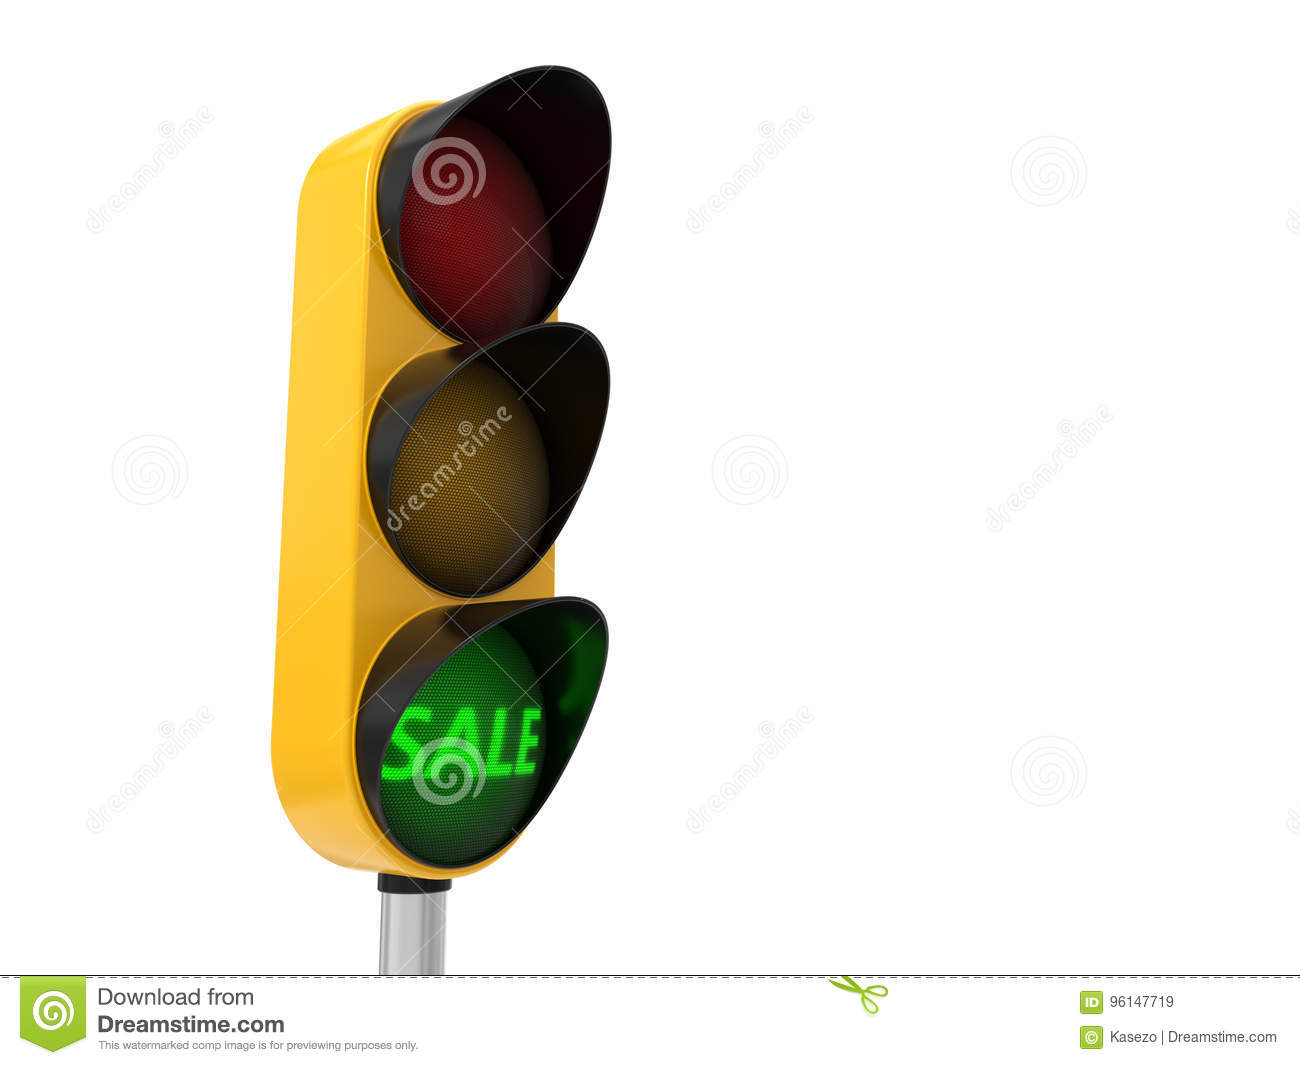 Traffic Light For Sale >> 3d Illustration Of Traffic Light With Sale Text Stock